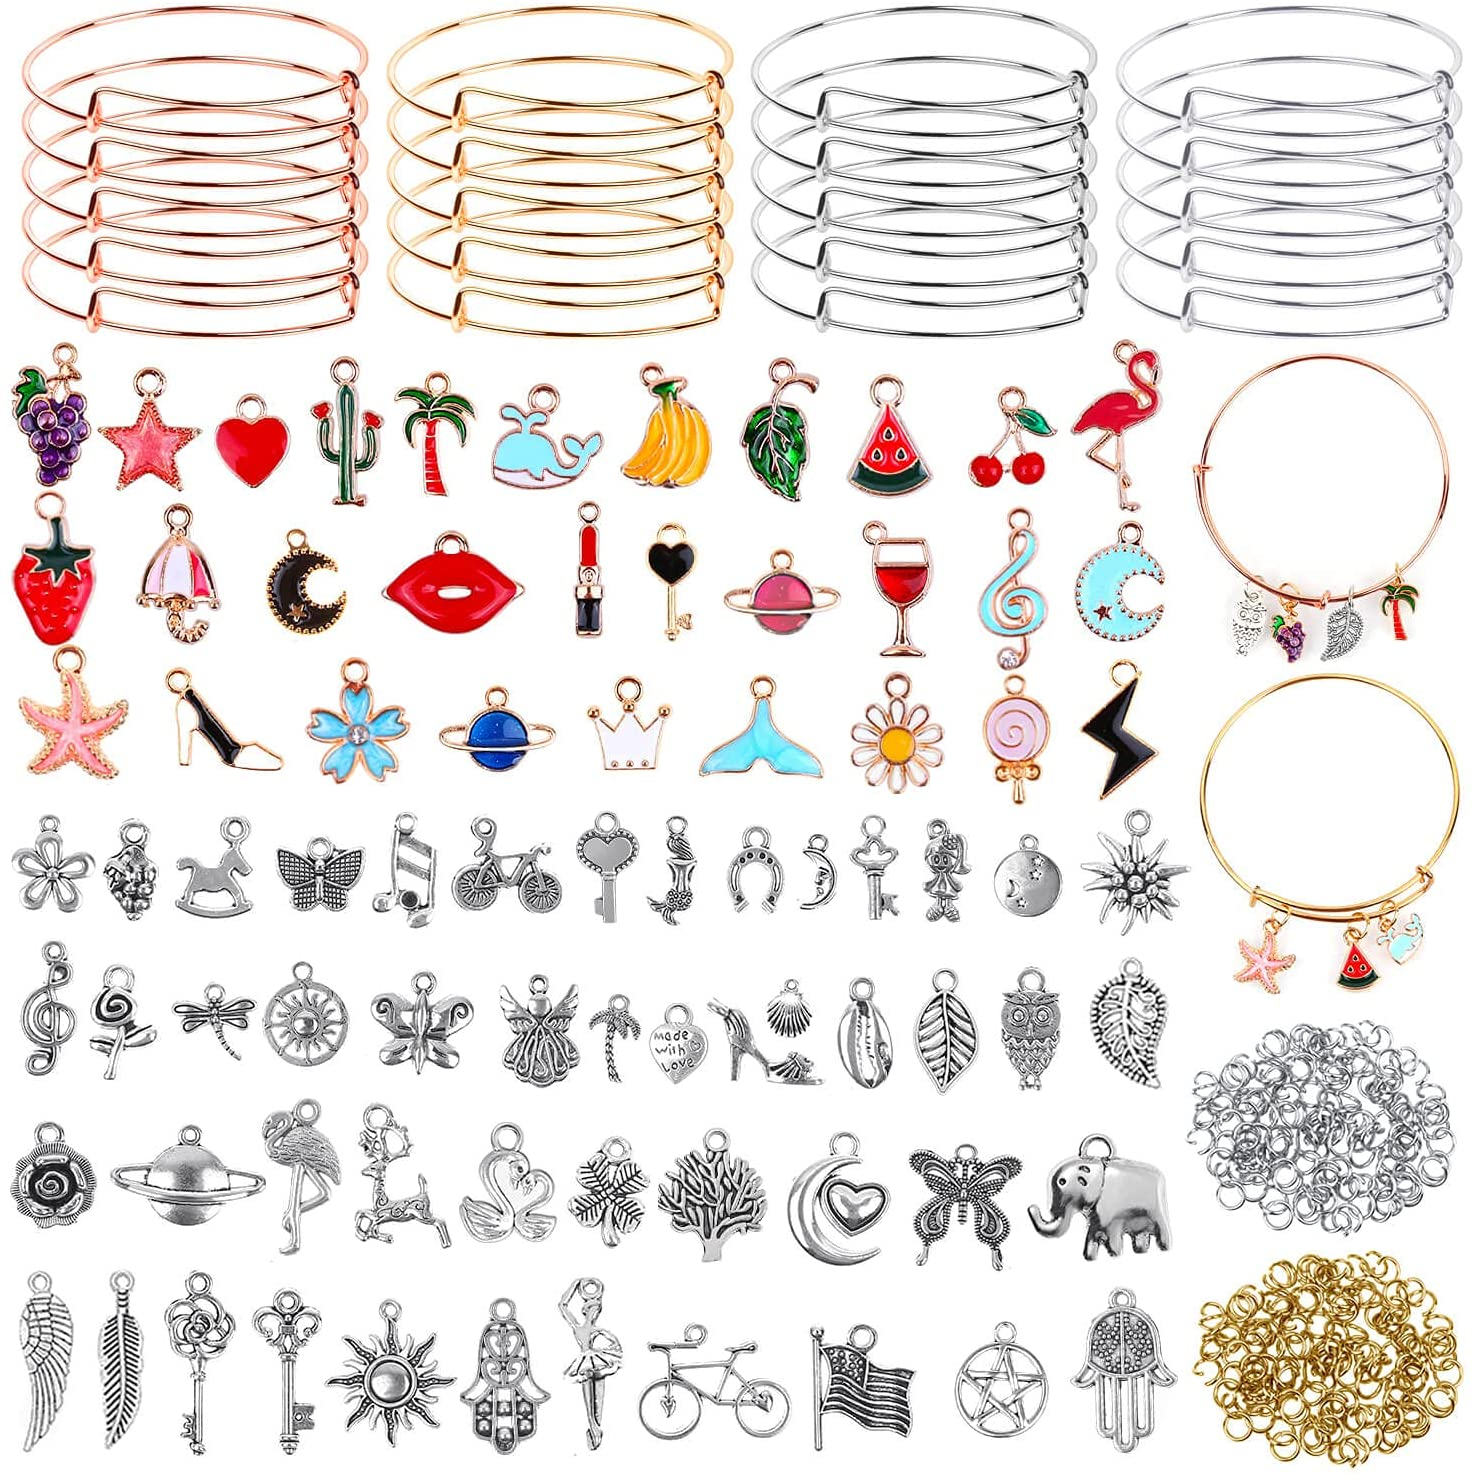 300Pcs Expandable Bangle Free Shipping Excellent New Bracelets with Charms Ban Flasoo 20Pcs